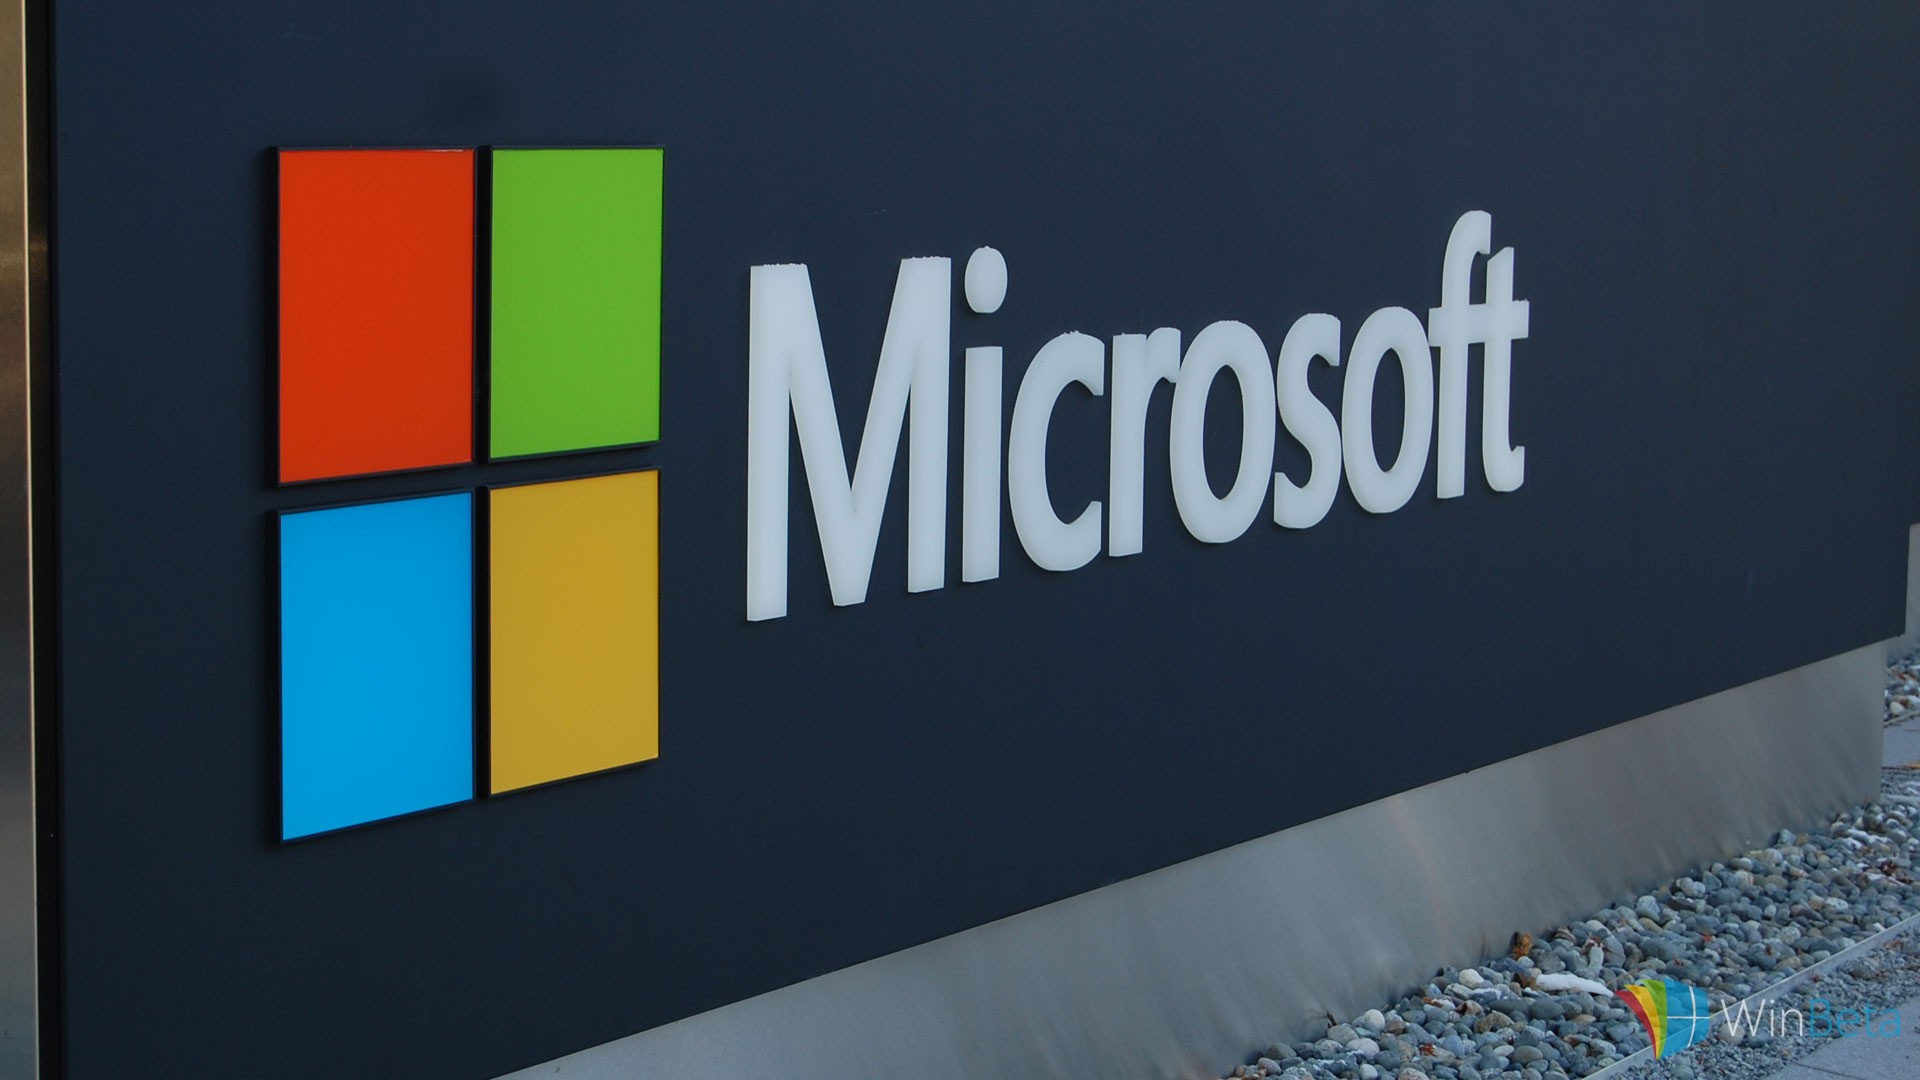 The company that cares: how microsoft helped make the world a better place in 2017 - onmsft. Com - december 28, 2017